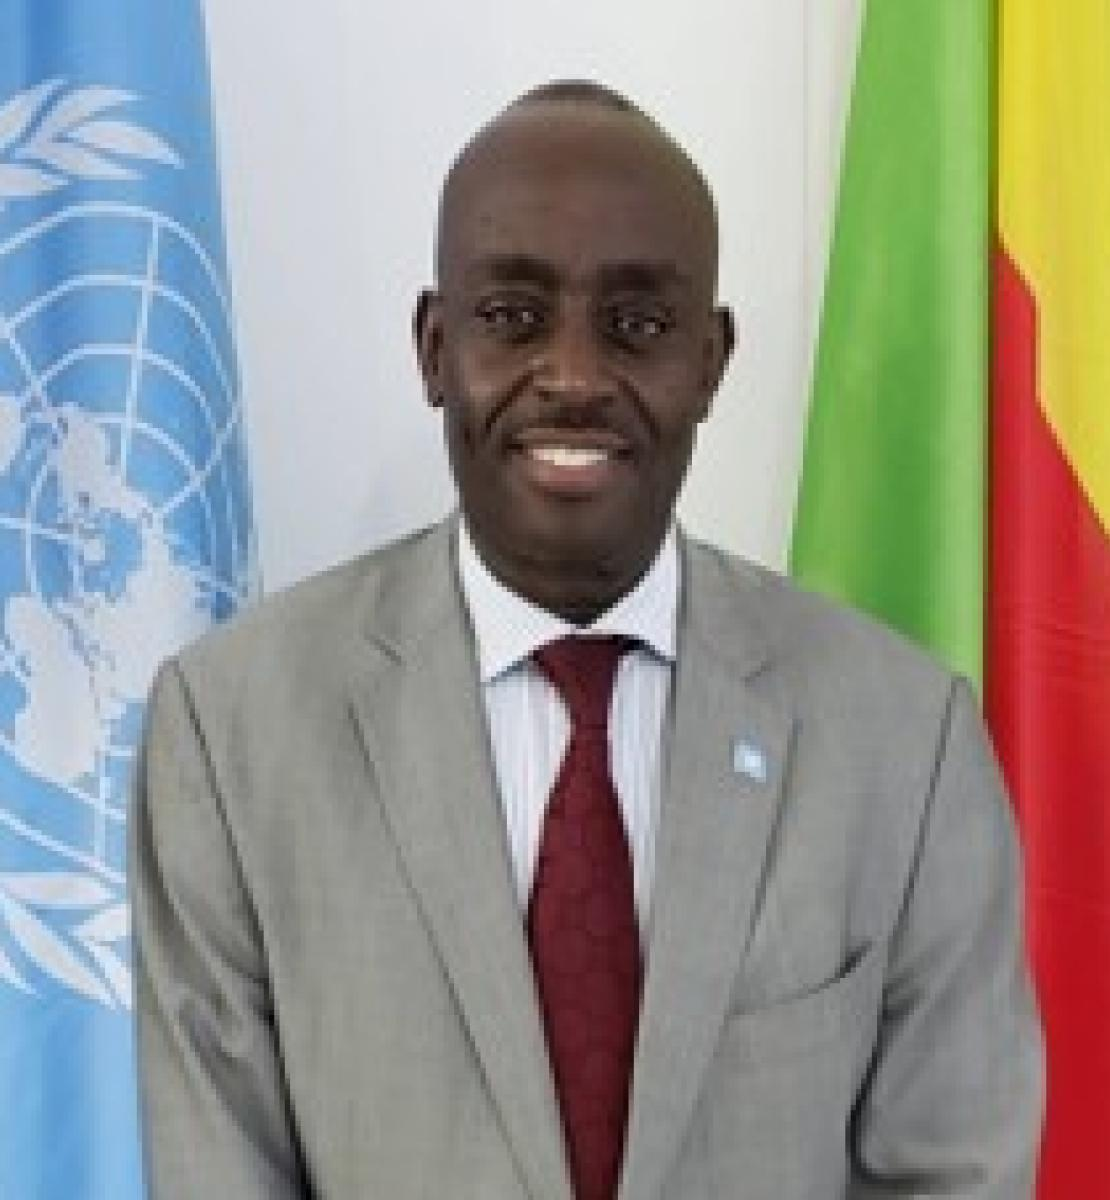 Official photo of Chris Mburu standing in between the UN and DRC flags.